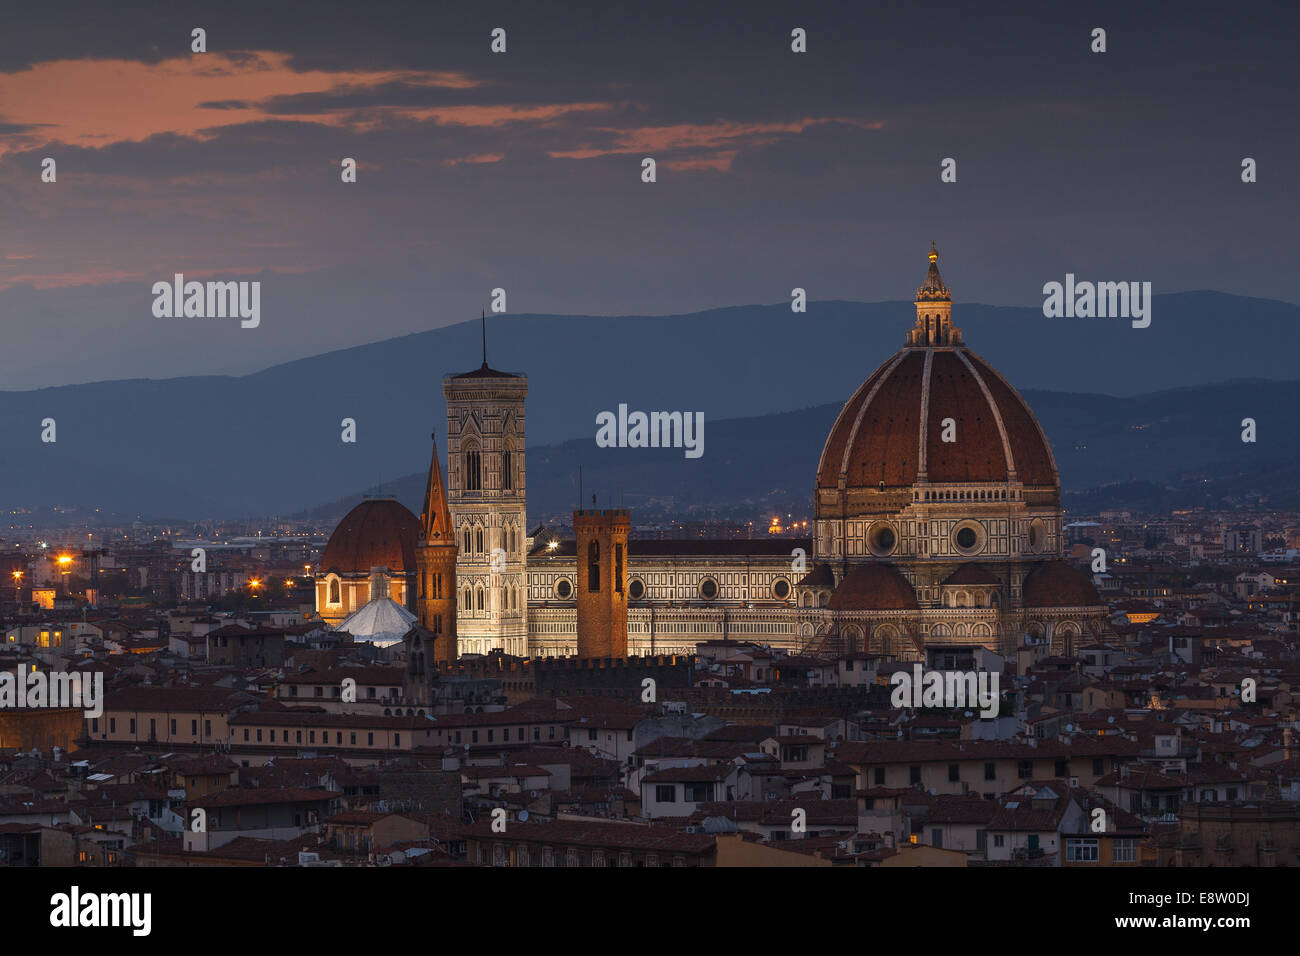 Santa María del Fiore Cathedral at night from Piazzale Michelangelo, Florence, Tuscany, Italy. - Stock Image